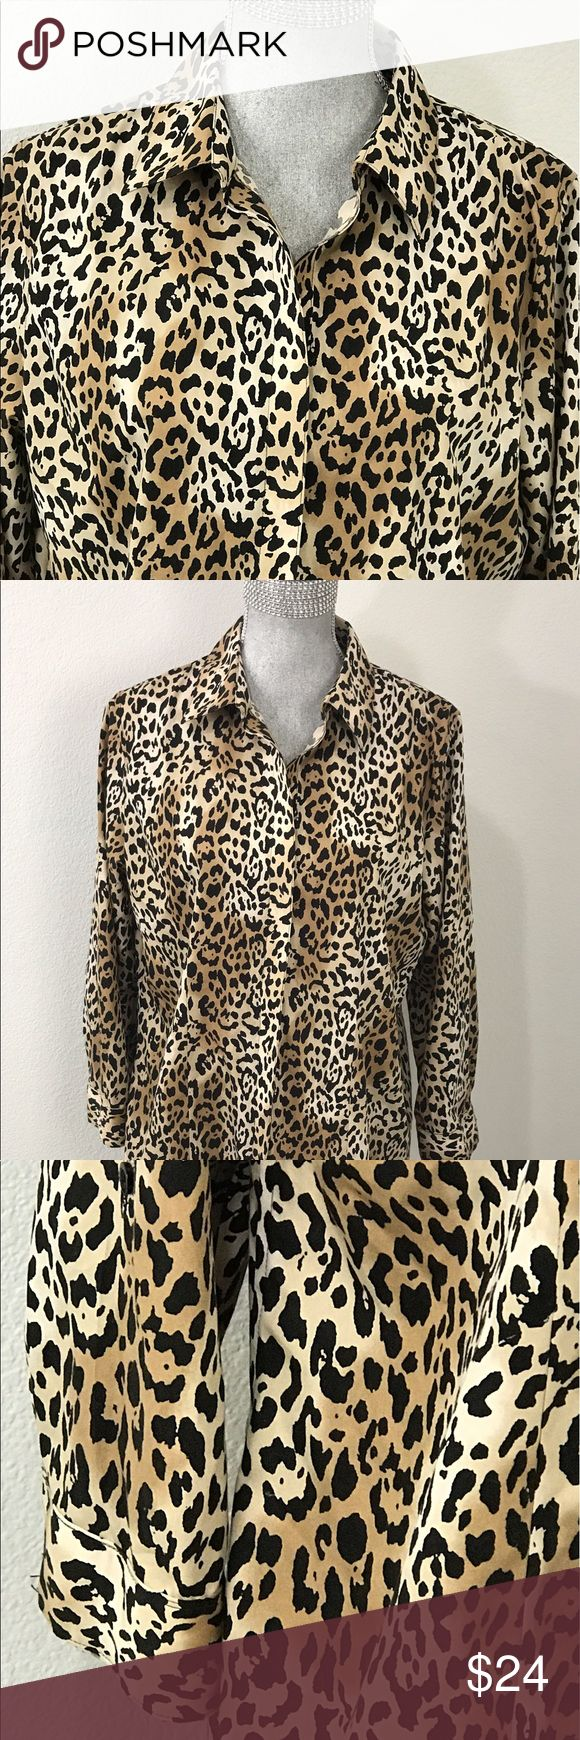 Cheetah Print Shirt Blouse Top by Chico's Size 2 Pulse Size animal print shirt. Cheetah pattern size 2 long button cuff sleeves. Great pre-loved condition. No noted flaws. Chico's Tops Button Down Shirts